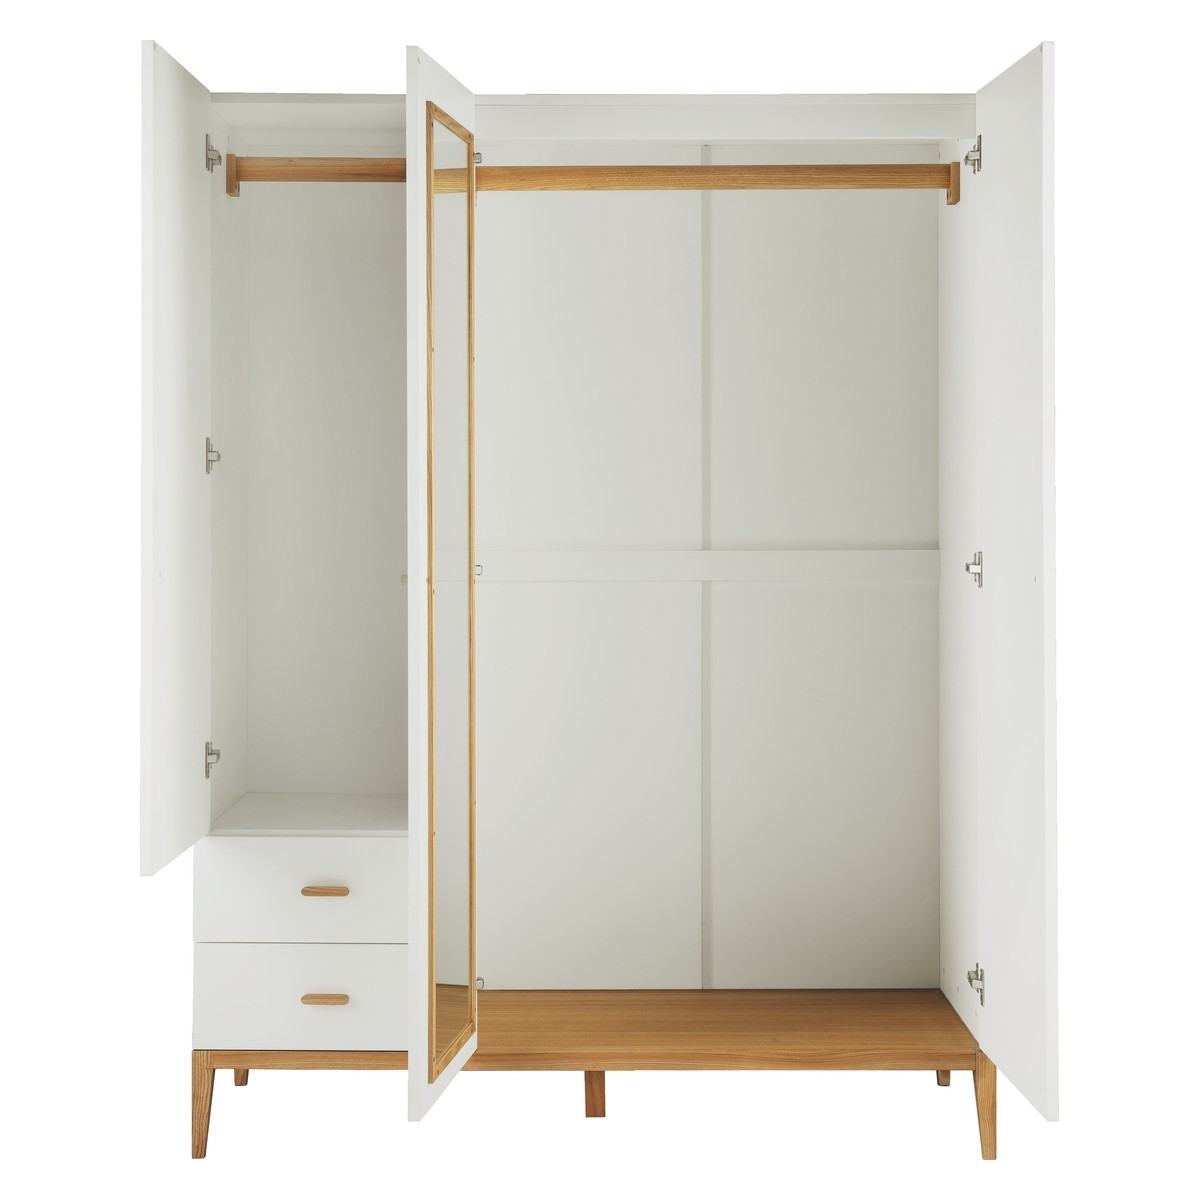 Buy Now At Habitat Uk Intended For Most Recent Triple Door Wardrobes (View 6 of 15)